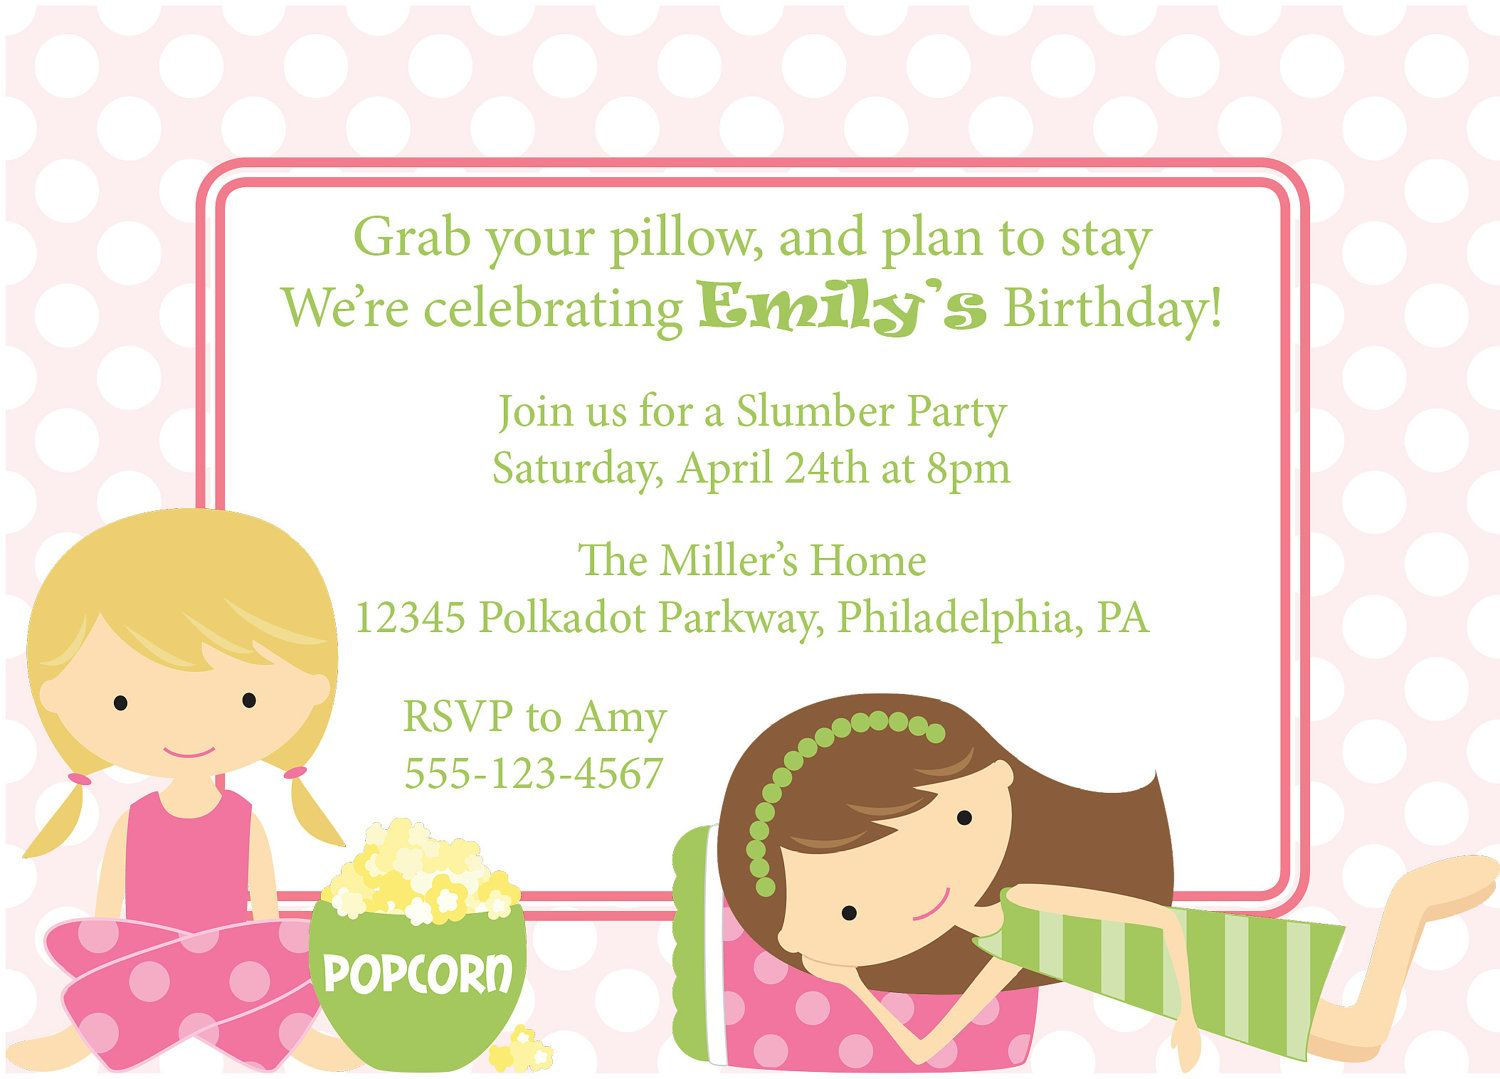 Slumber Party Invitation Sleepover Invite Birthday Party Girls – Free Printable Slumber Party Invitation Templates